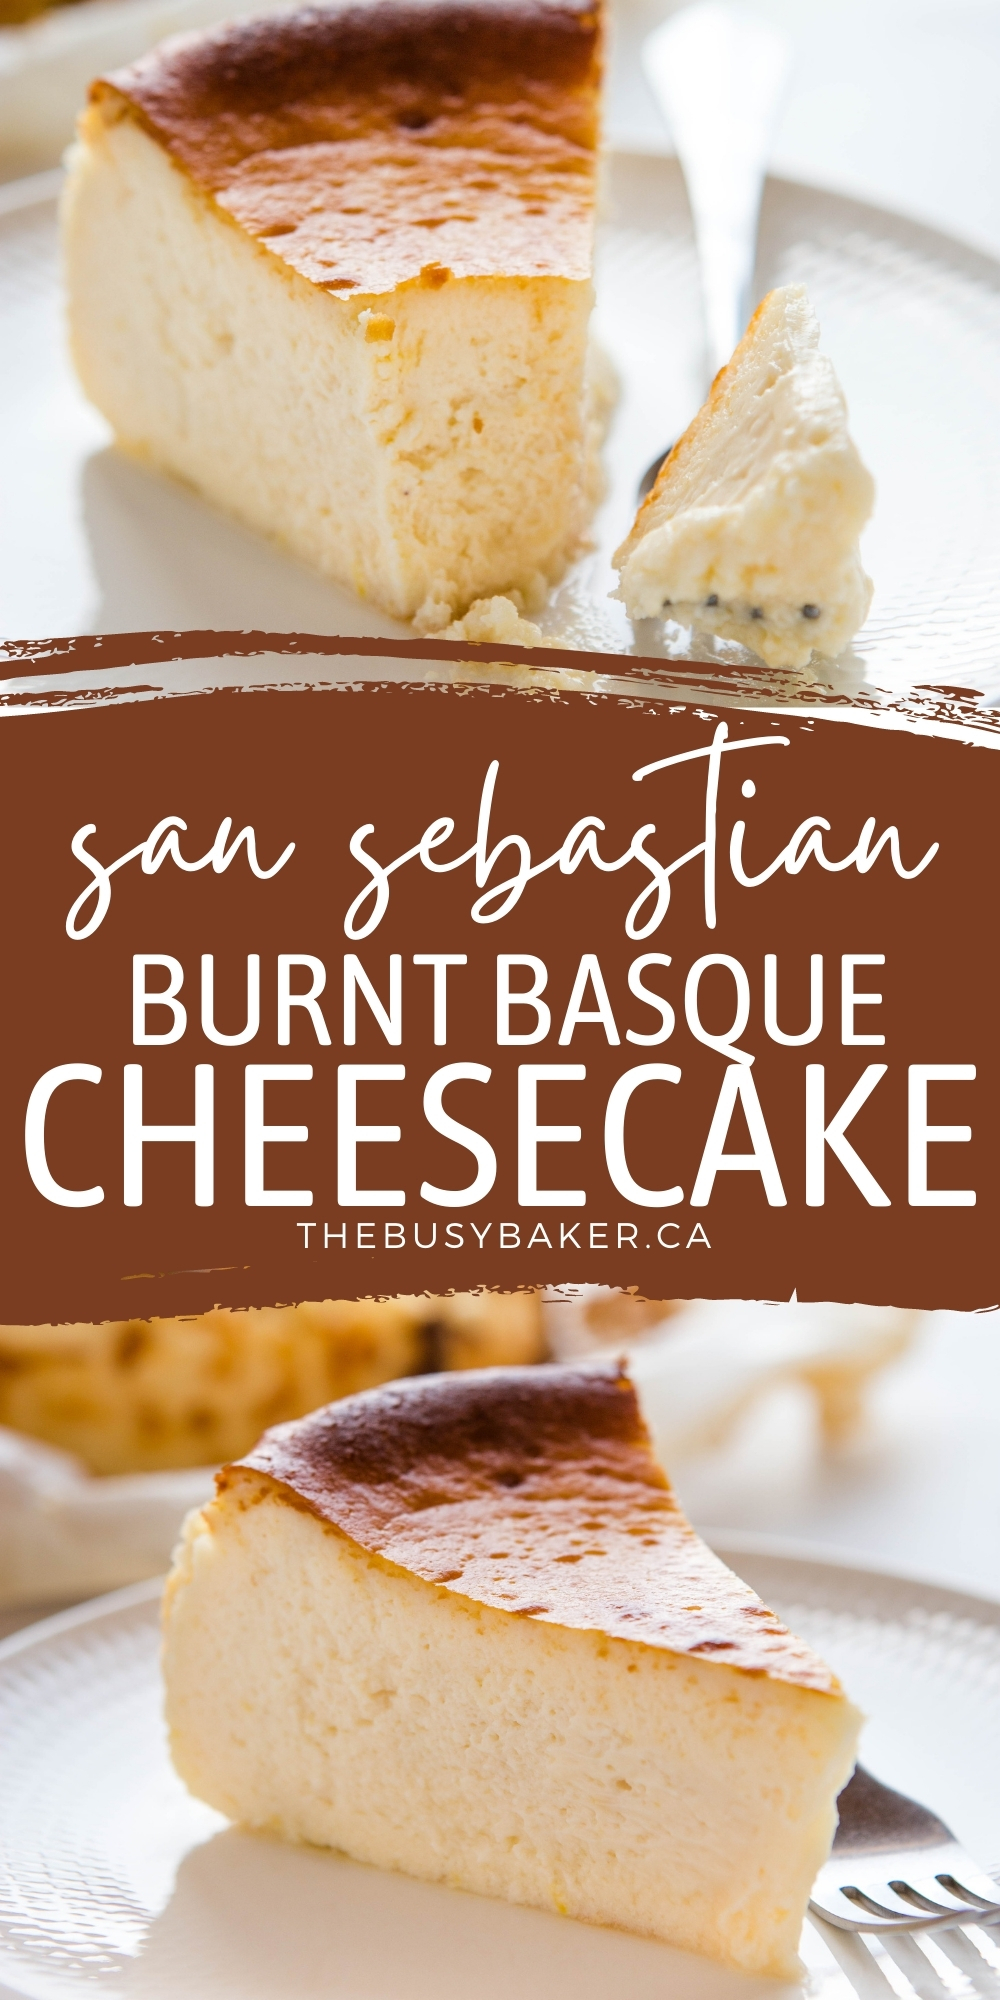 This San Sebastian Cheesecake is a traditional Spanish Basque cheesecake - perfectly light, creamy and smooth, baked to caramelized perfection! Easy to make and crustless! Recipe from thebusybaker.ca! #basquecheesecake #cheesecake #sansebastiancheesecake #creamycheesecake #bakedcheesecake via @busybakerblog